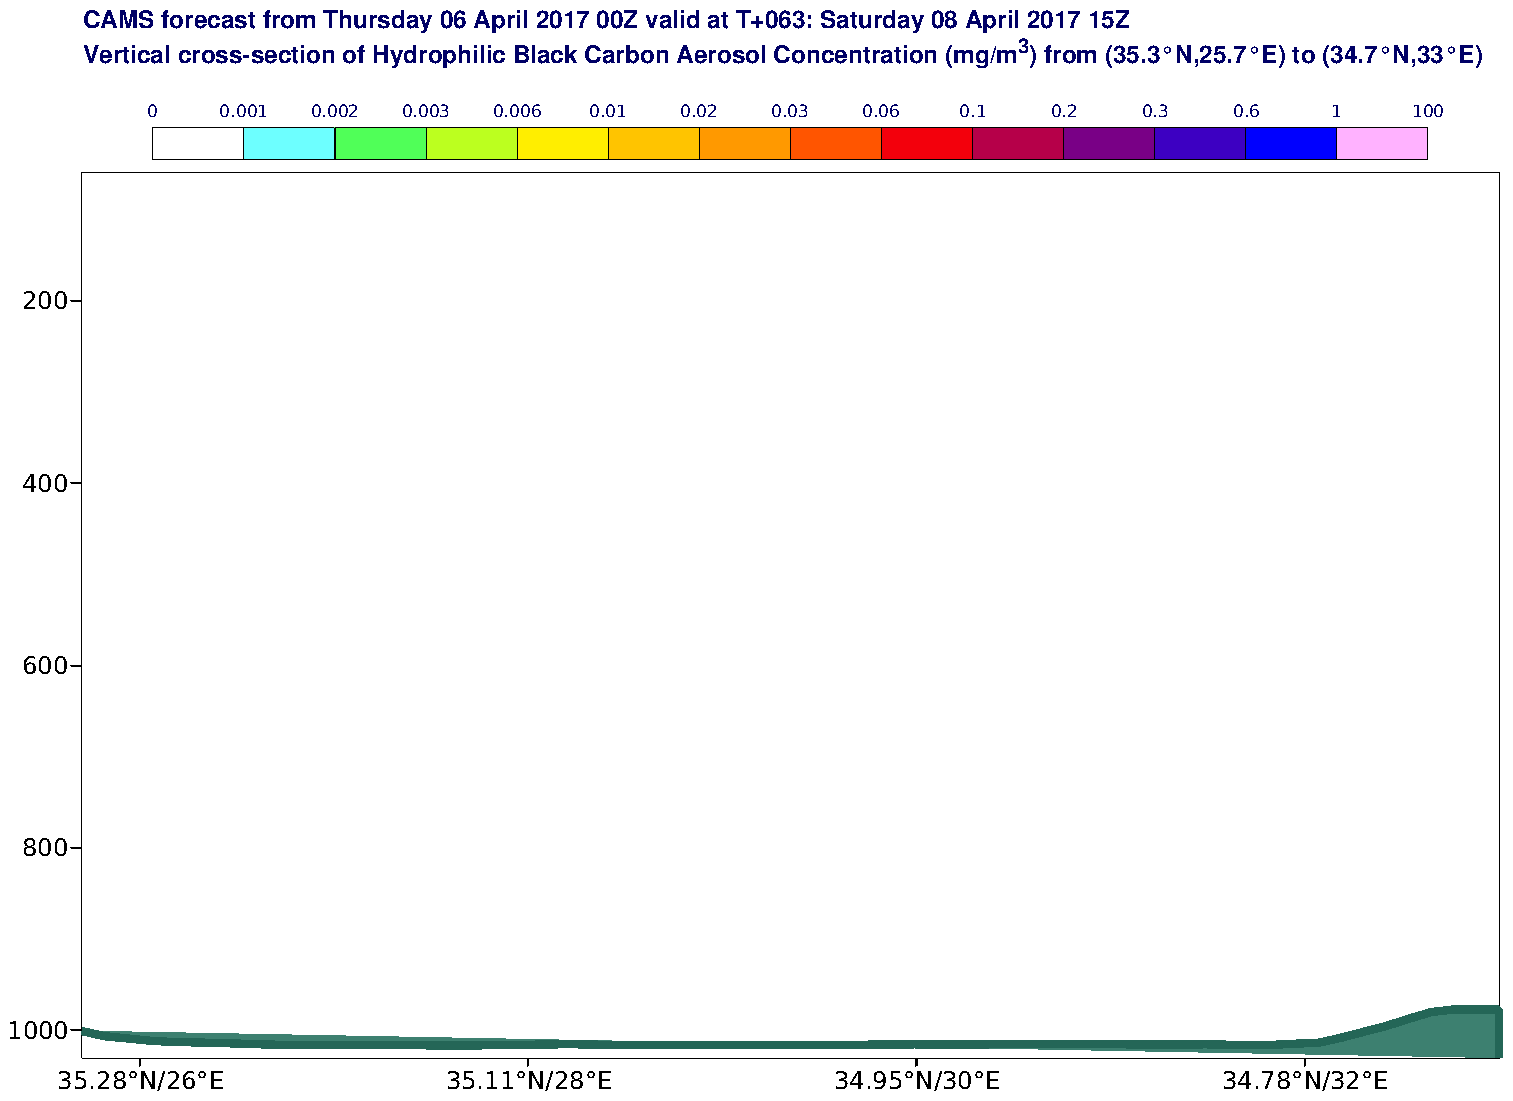 Vertical cross-section of Hydrophilic Black Carbon Aerosol Concentration (mg/m3) valid at T63 - 2017-04-08 15:00